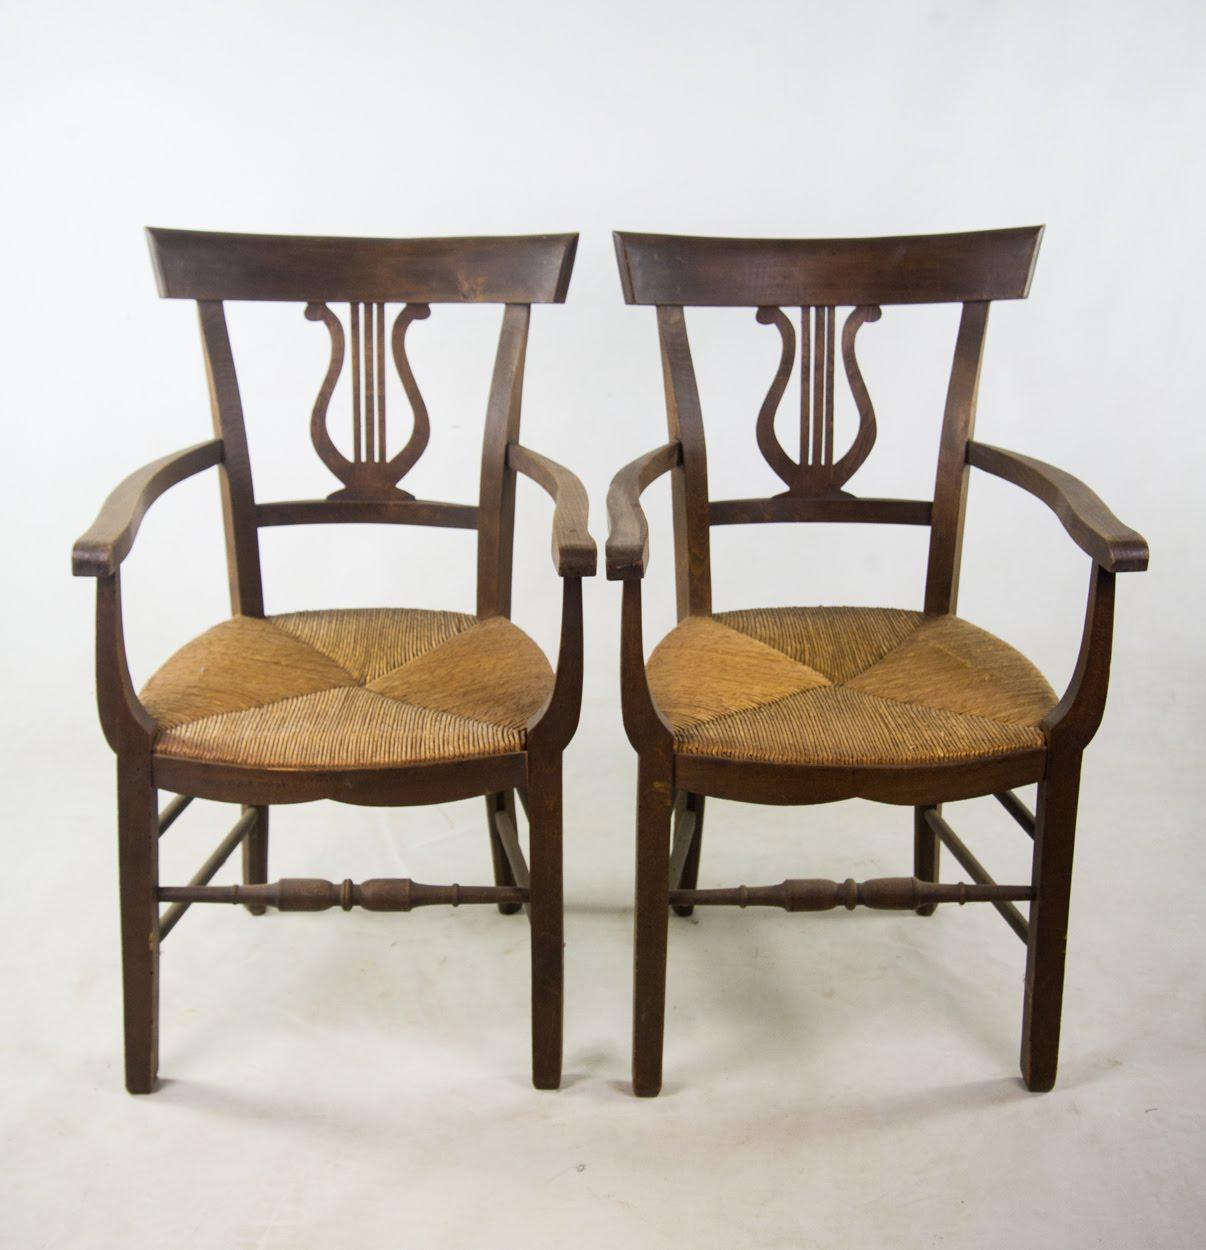 Lovely Empire Style Hand Woven Rush Chairs   A Pair For Sale   Image 11 Of 11